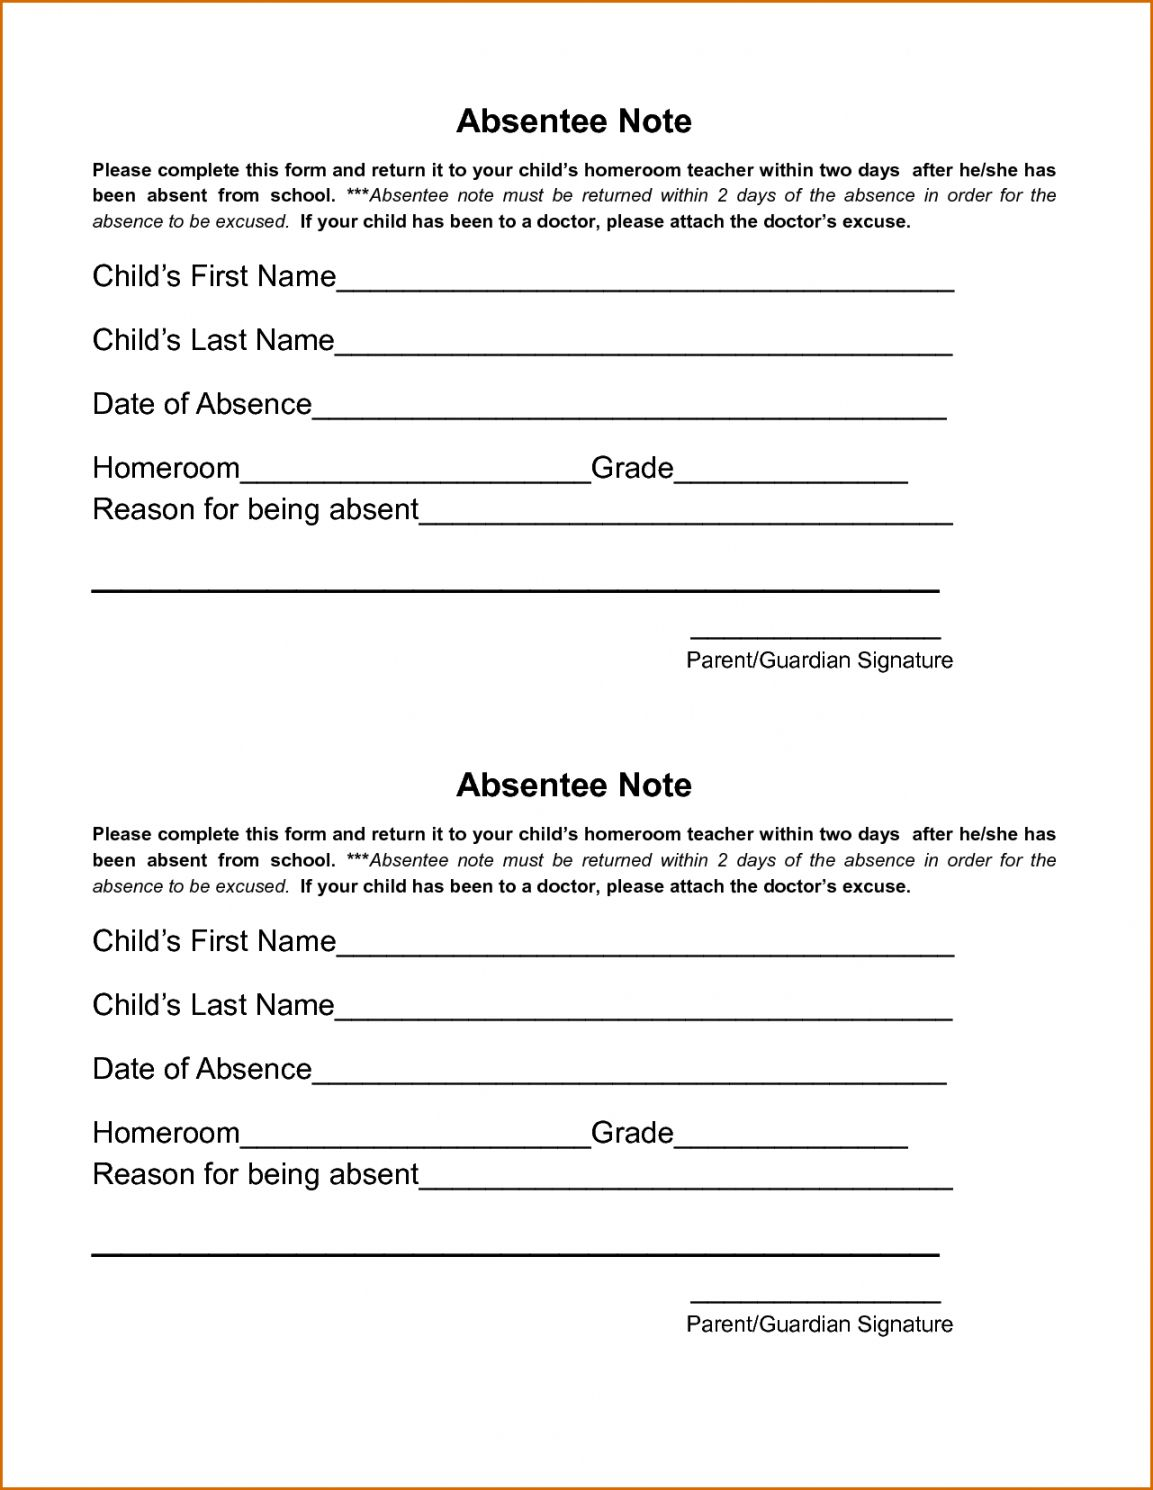 Printable Doctors Excuse Note For Work Template Pictures Doctors Doctors Excuse Note For Wor Doctors Note Template Doctors Note Doctor